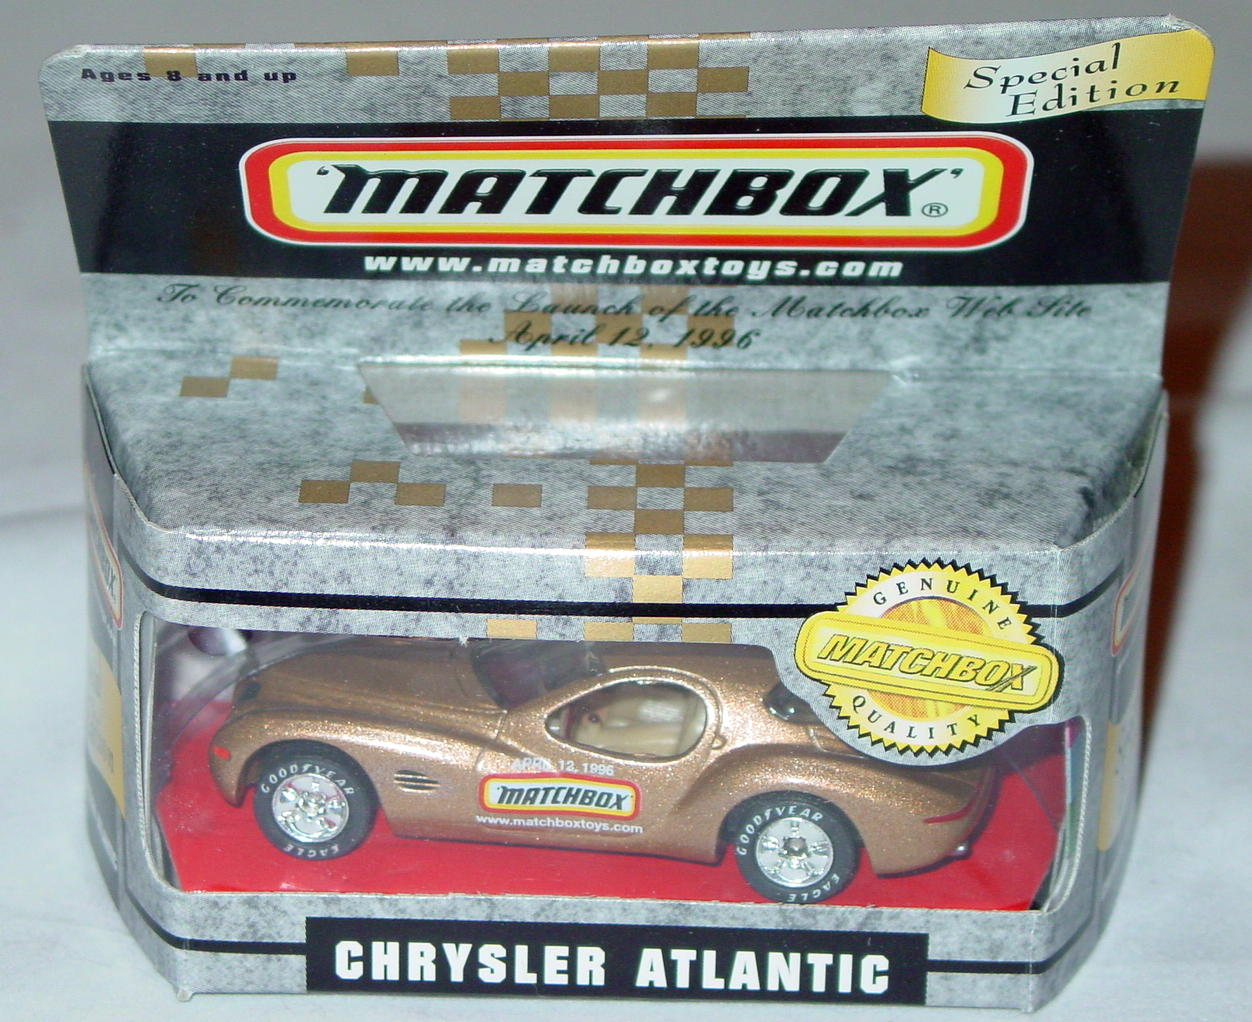 Collectibles - 32833 11G3 Chrysler Atlantic Matchboxtoys.com